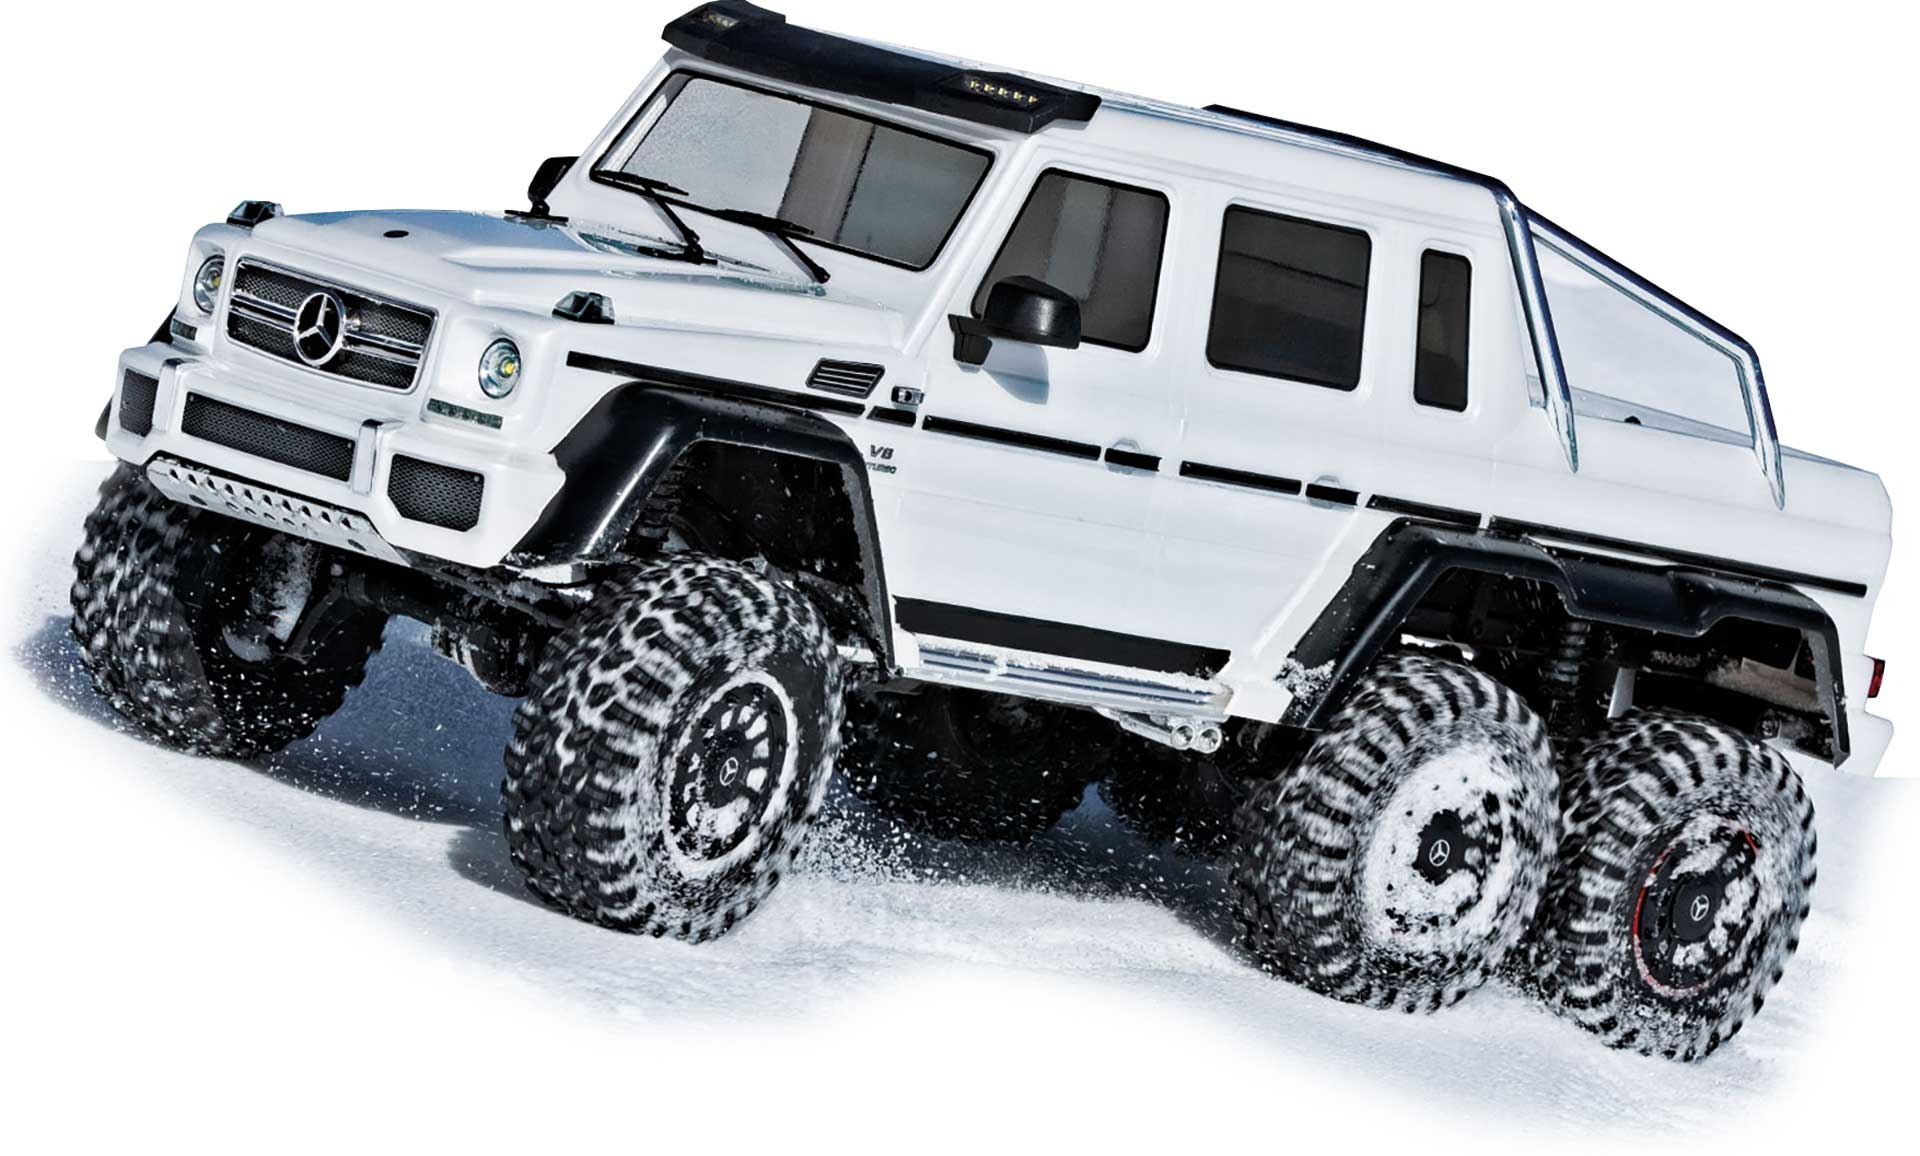 TRAXXAS TRX-6 MERCEDES-BENZ G 63 AMG 6X6 CRAWLER WHITE BRUSHED RTR 1/10 WITH LIGHT